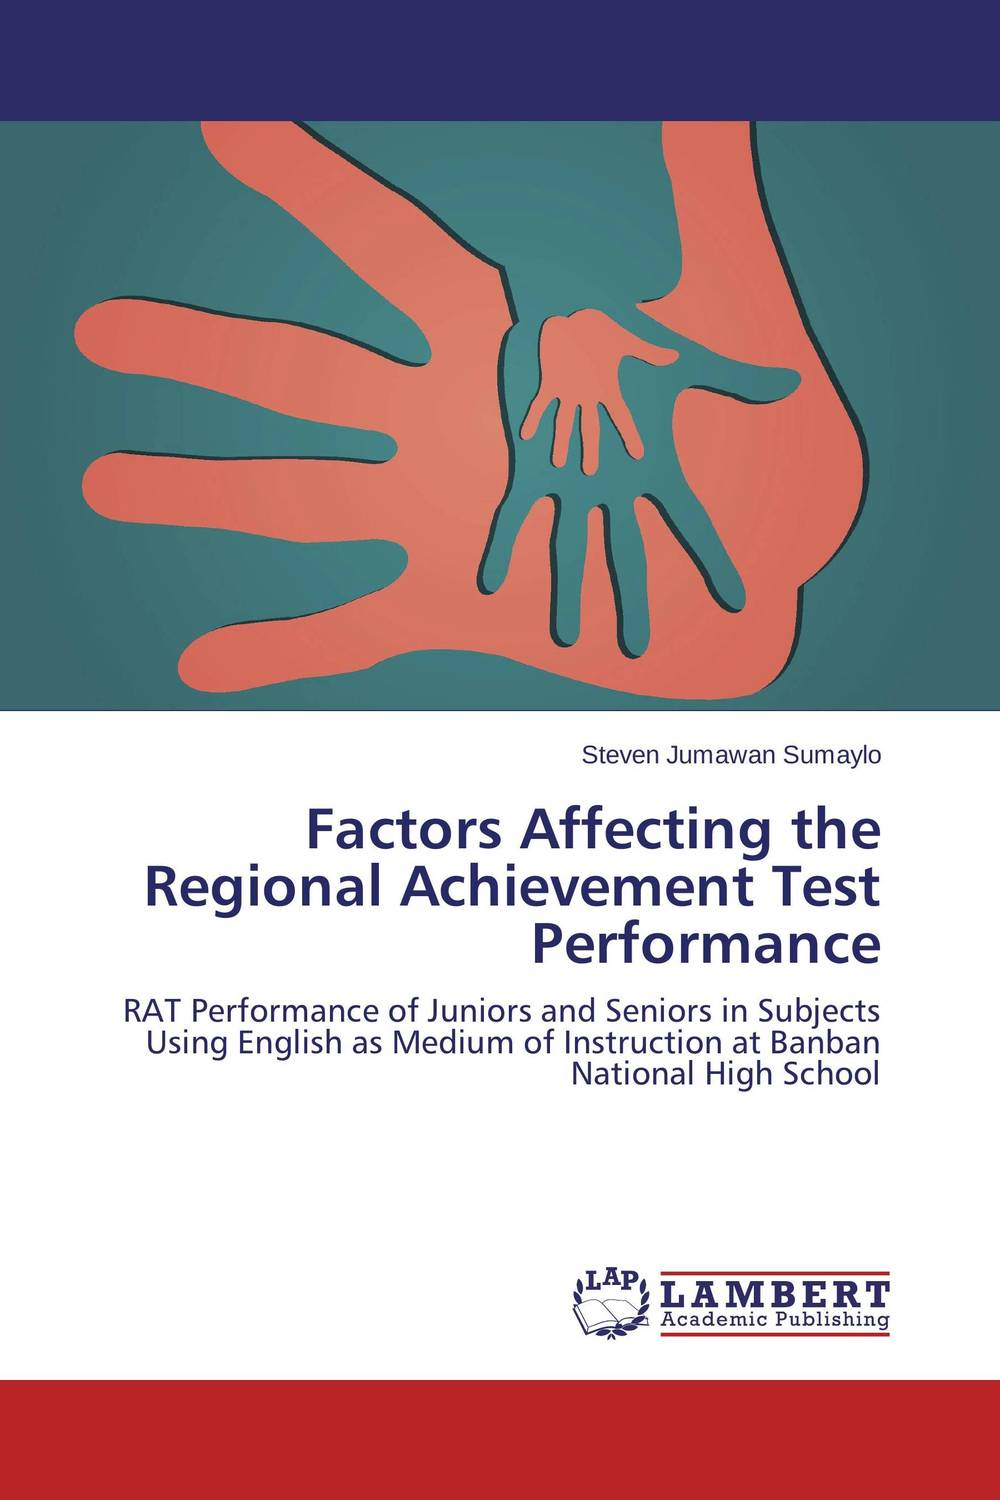 Factors Affecting the Regional Achievement Test Performance ruthaychonnee sittichai determining factors for academic achievement and attitude of students